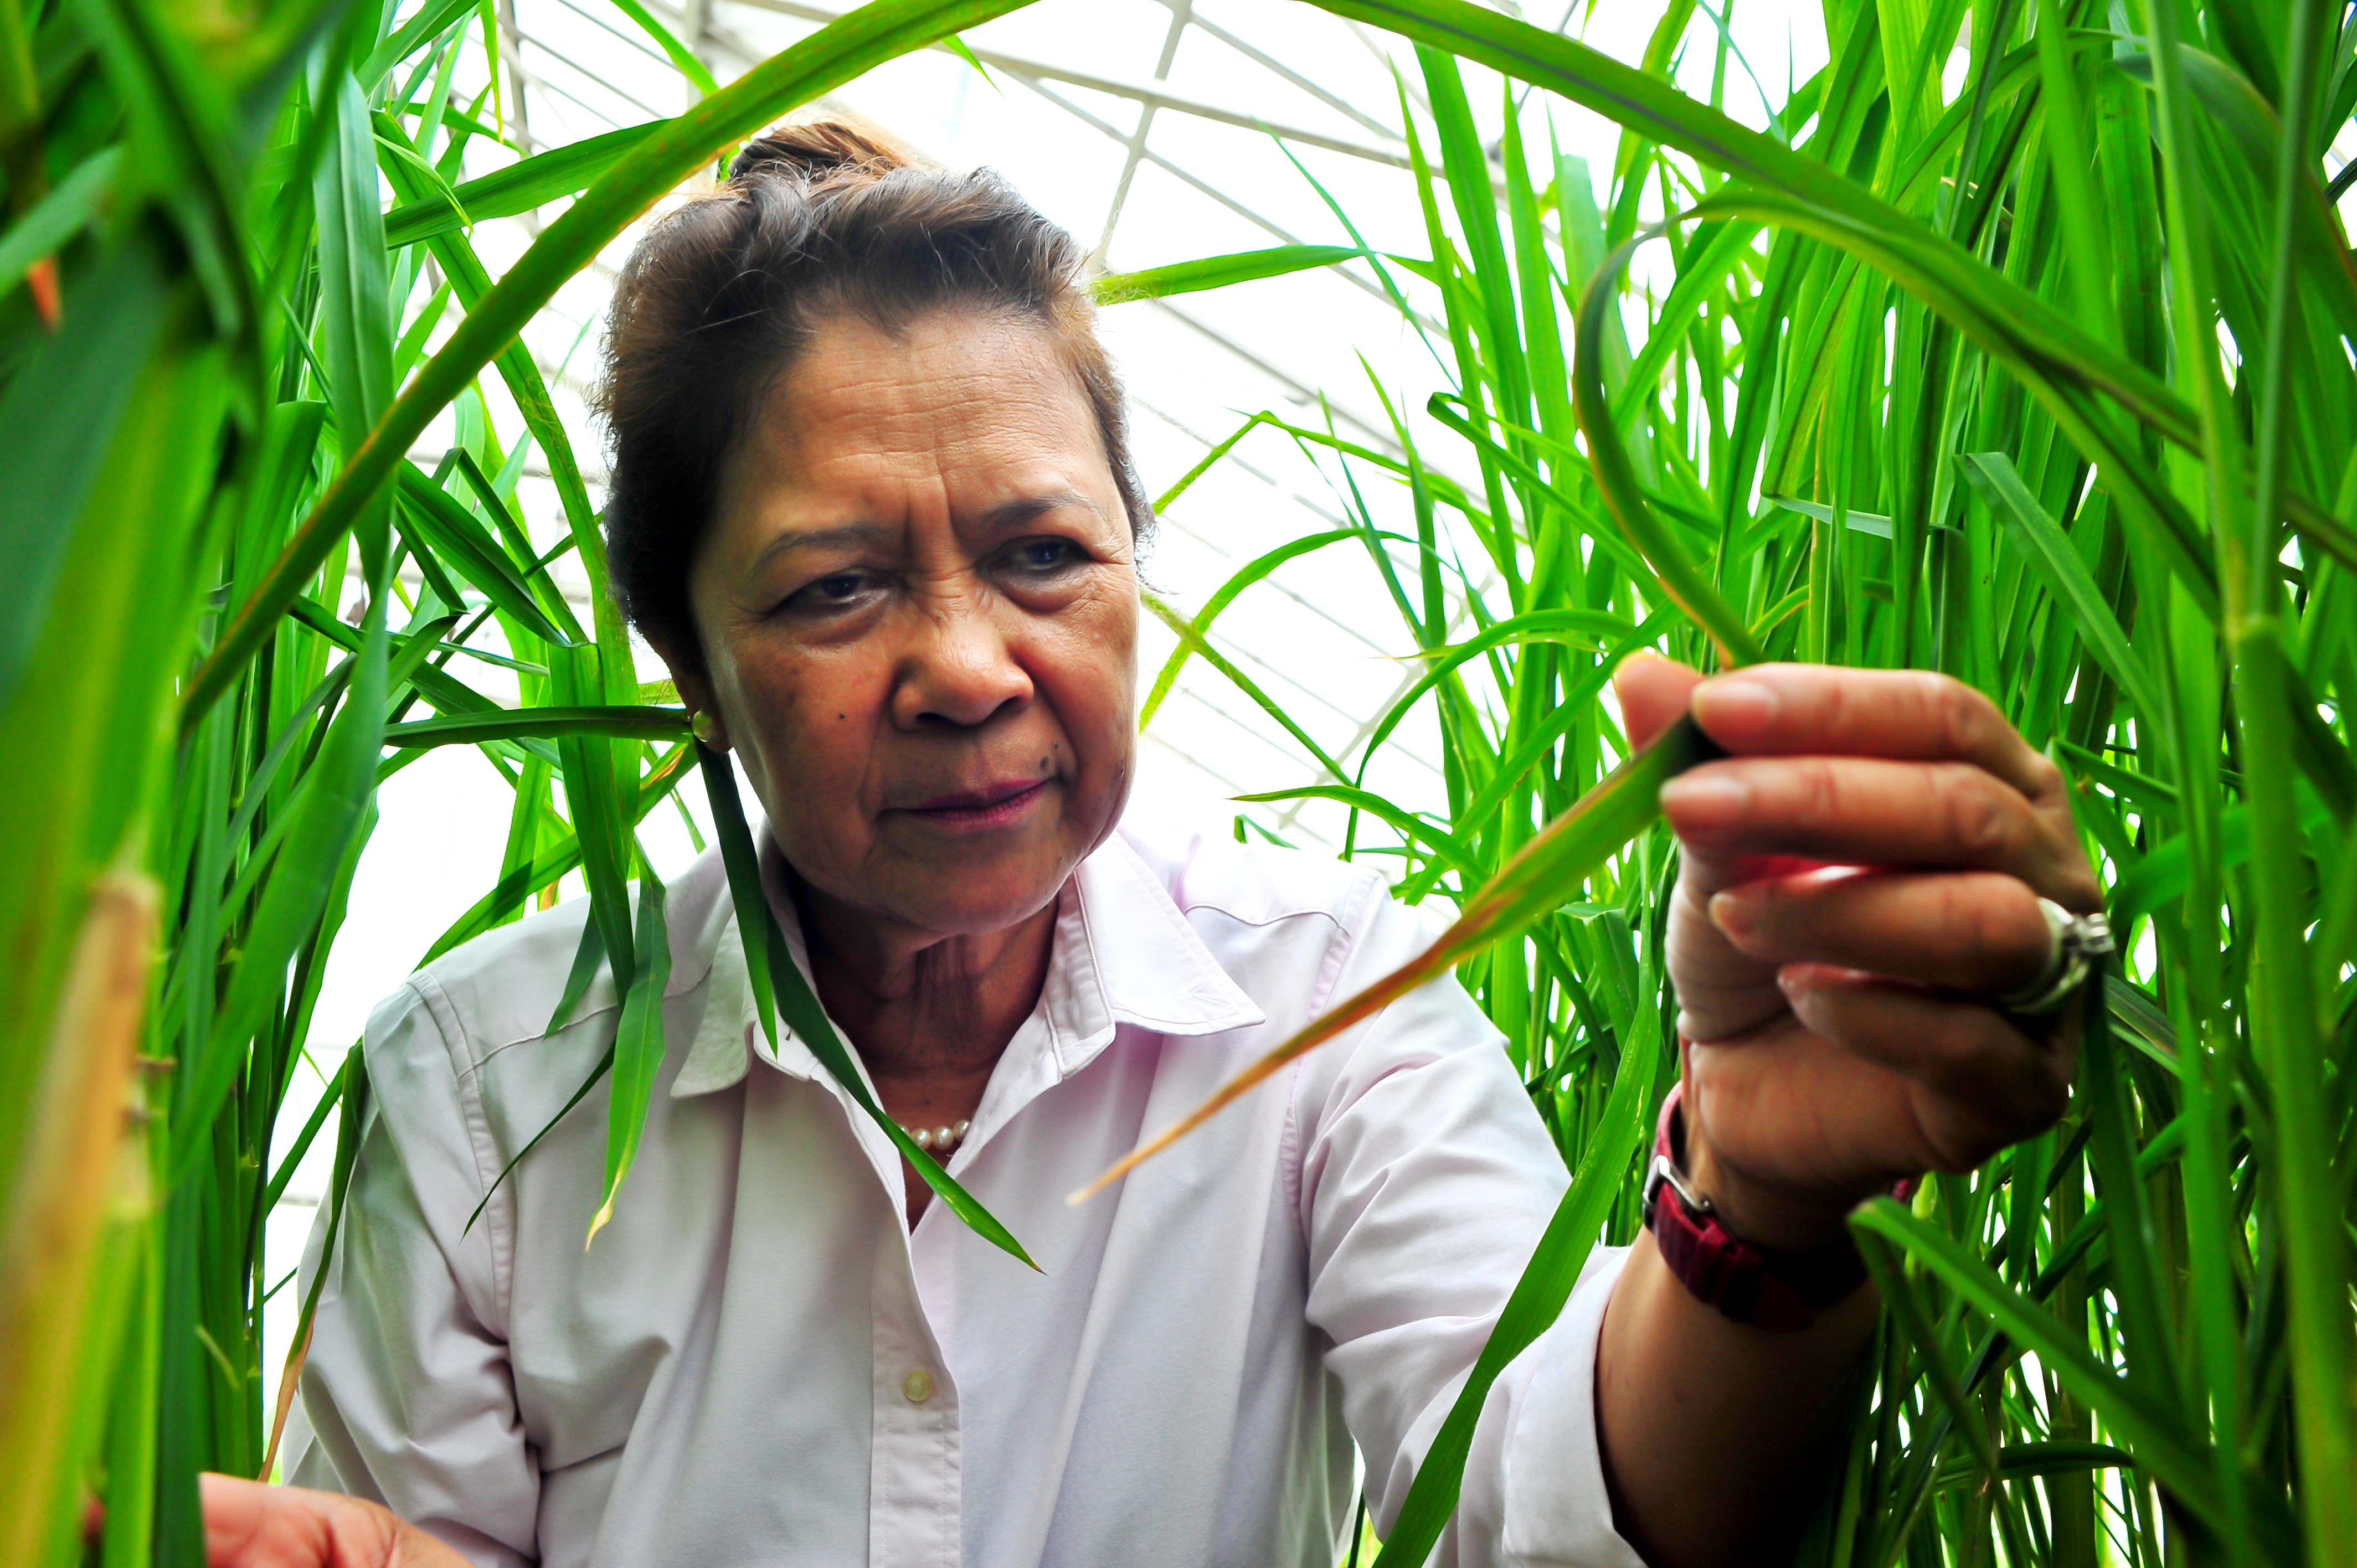 Nollie spent 34 years as a member of IRRI's rice plant pathology team developing new strategies to fight the major diseases that afflict rice plants. (Photo: IRRI)